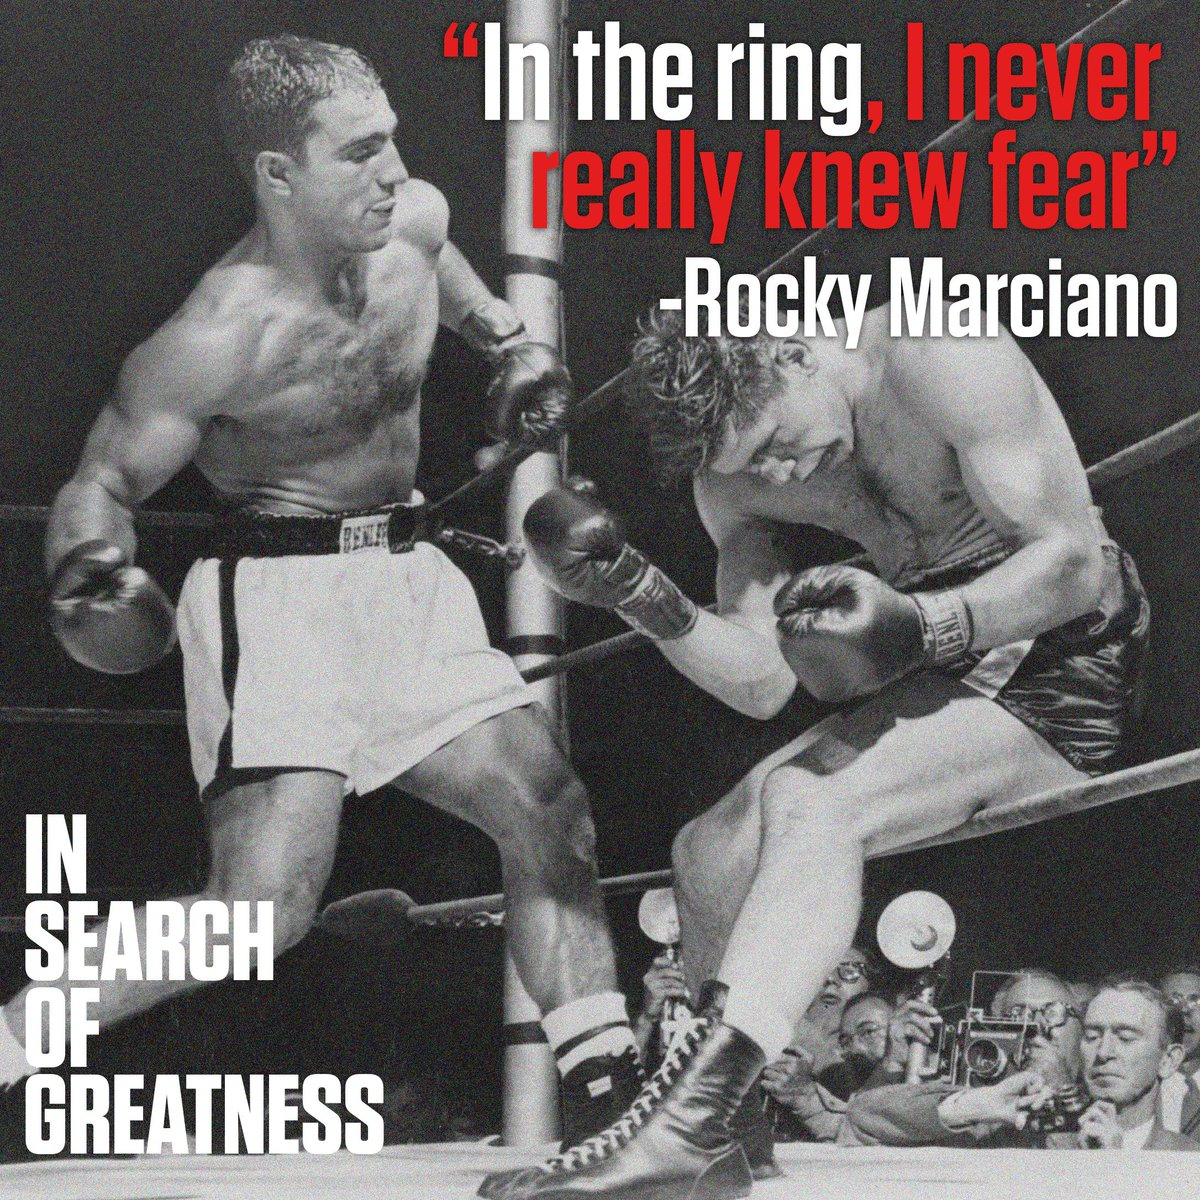 """He realized the limitations of his own physique and developed a whole new style of boxing that suited him."" -@SirKenRobinson on Rocky Marciano. Unearth the secrets of greatness. Available for pre-order in iTunes: https://apple.co/2Uqojbp"